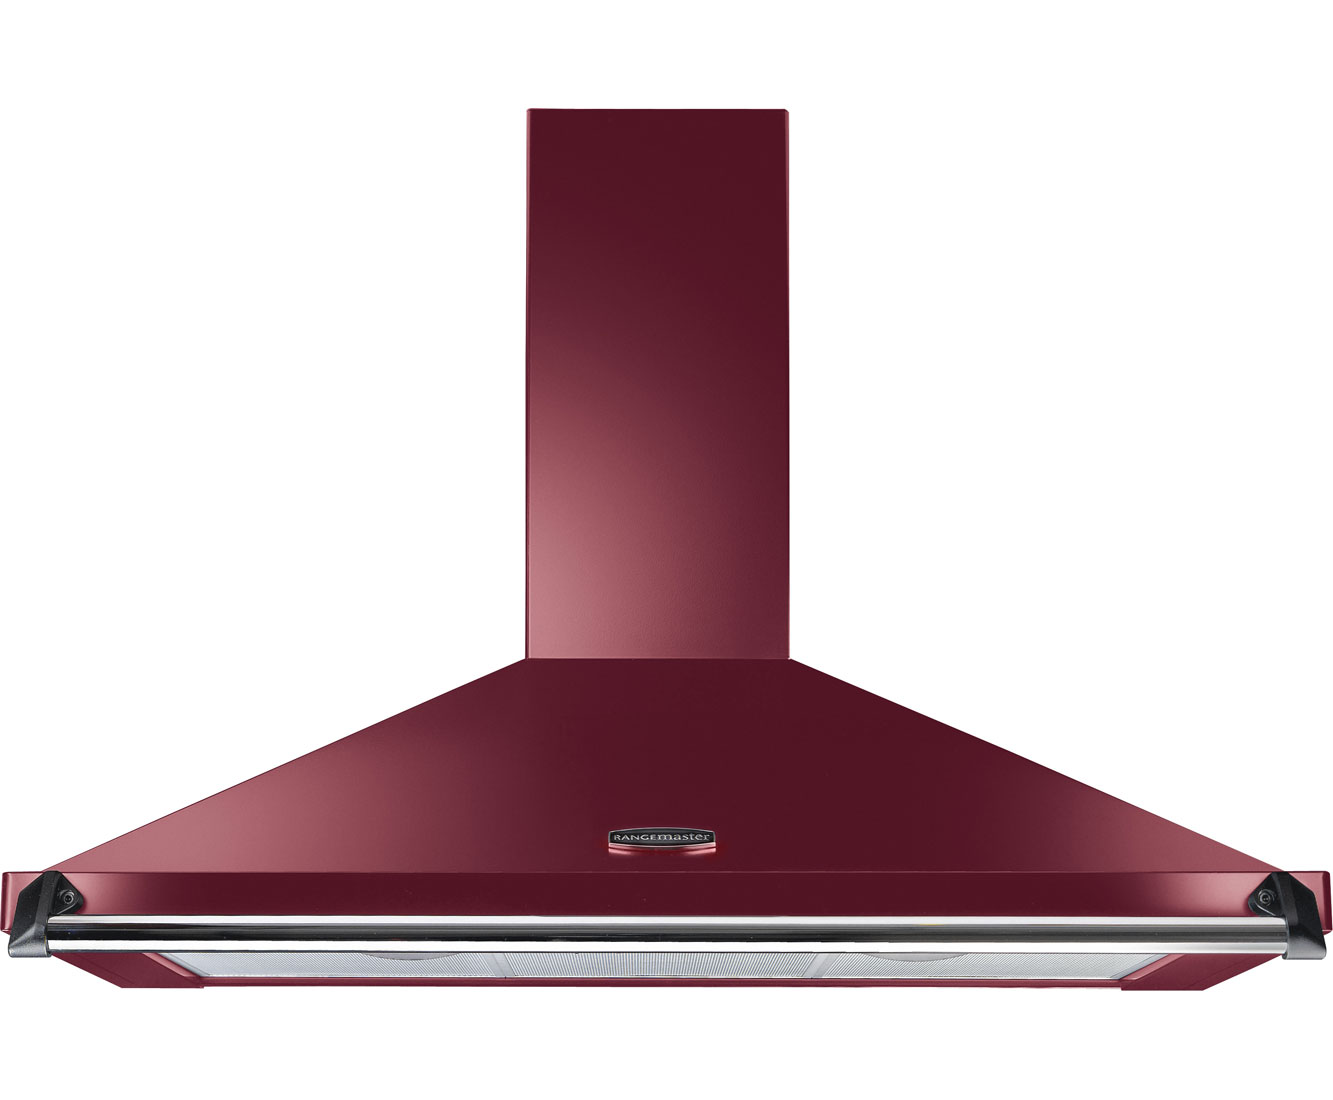 Rangemaster Classic CLAHDC90CYC Integrated Cooker Hood in Cranberry  Chrome